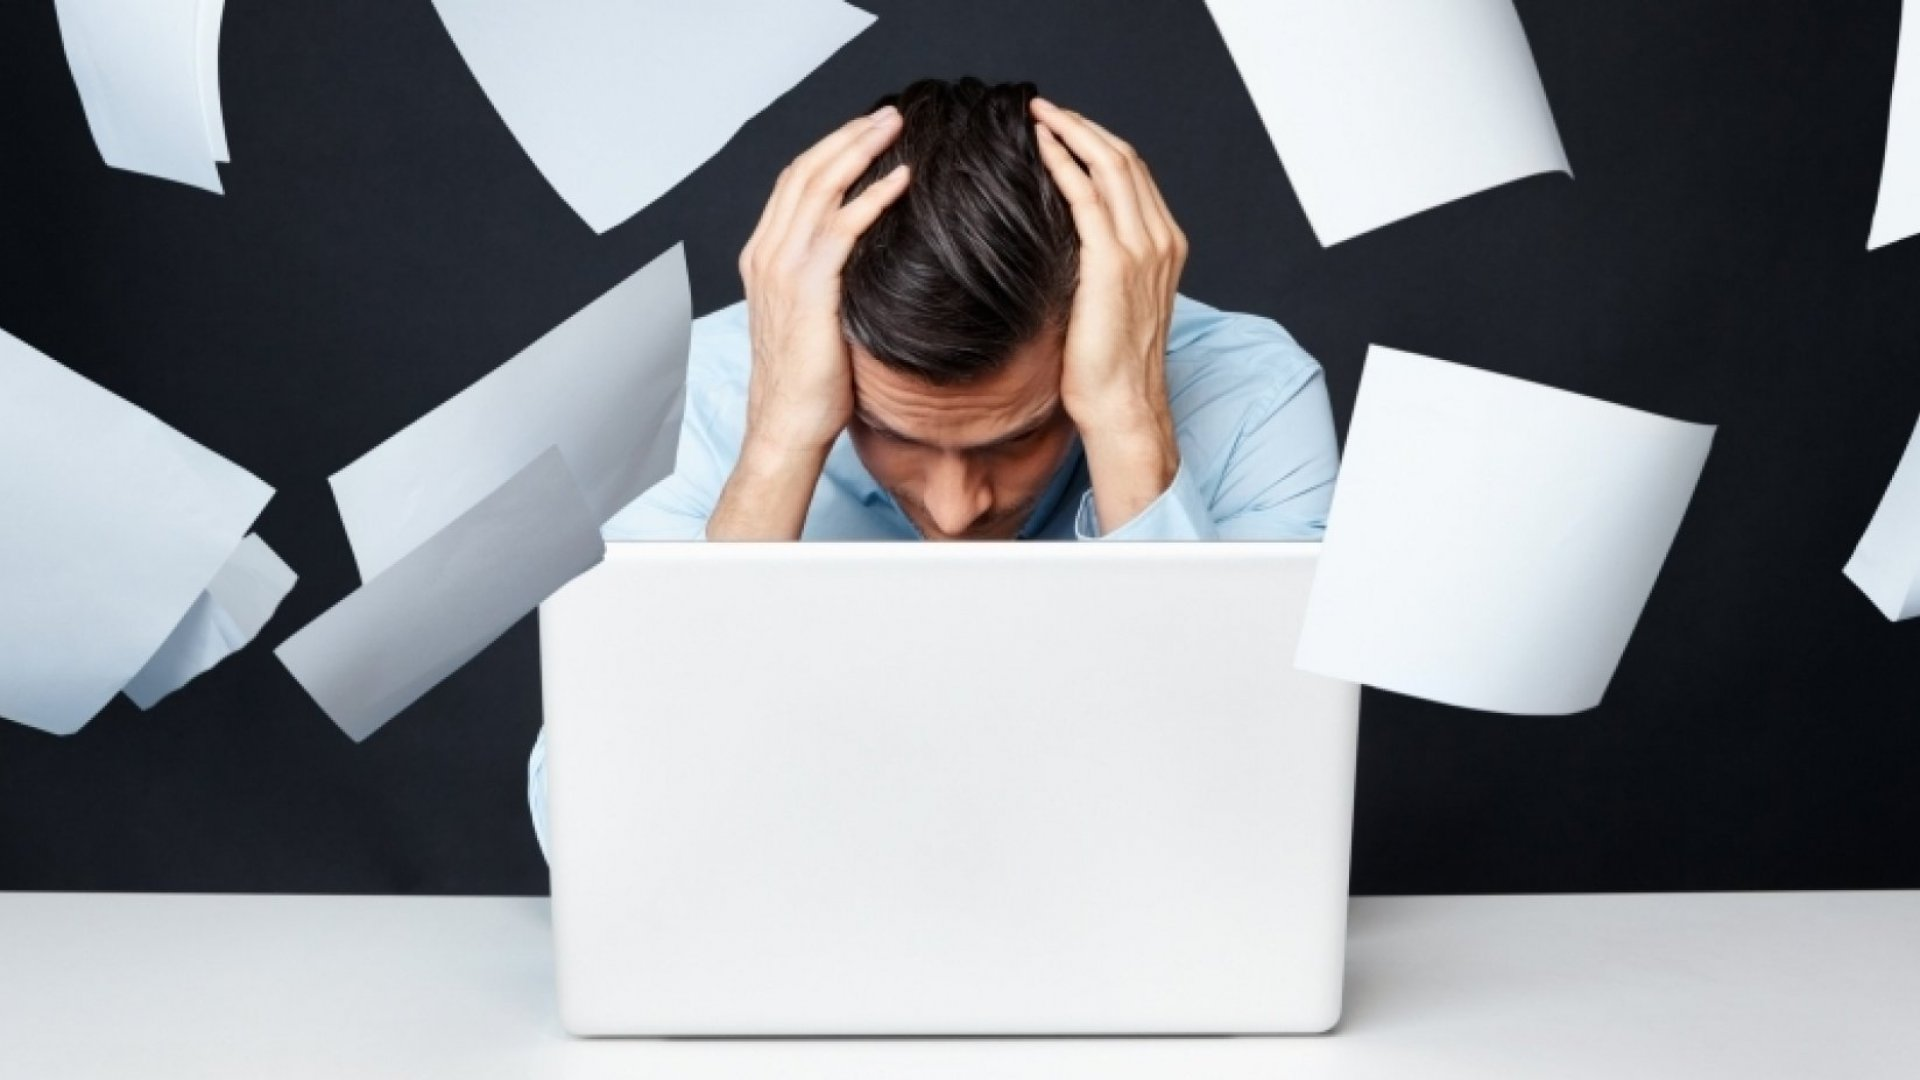 How to Make Sure Your Email Cuts Through the Noise